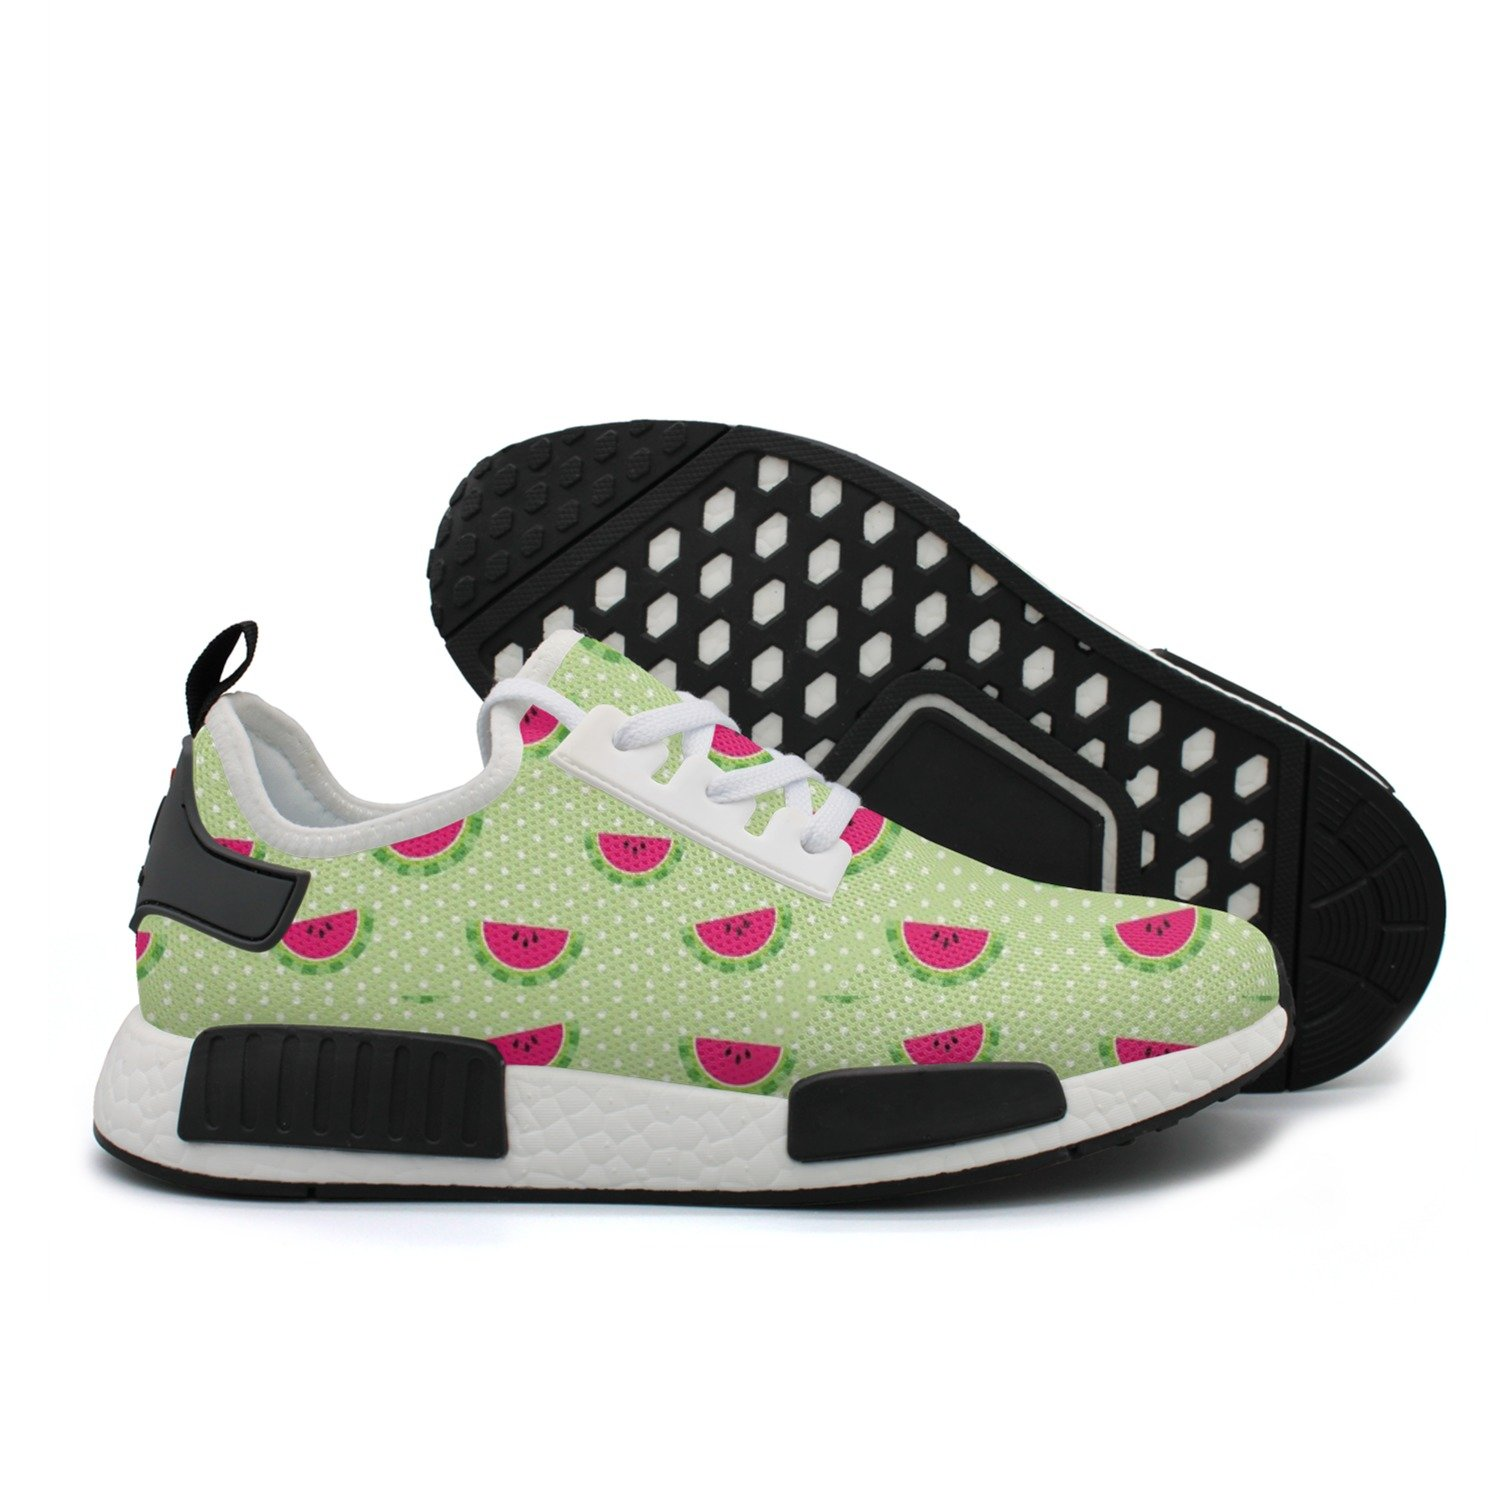 Don't Eat Watermelon Seeds(2) Girls' Sneakers Fitness Shoes